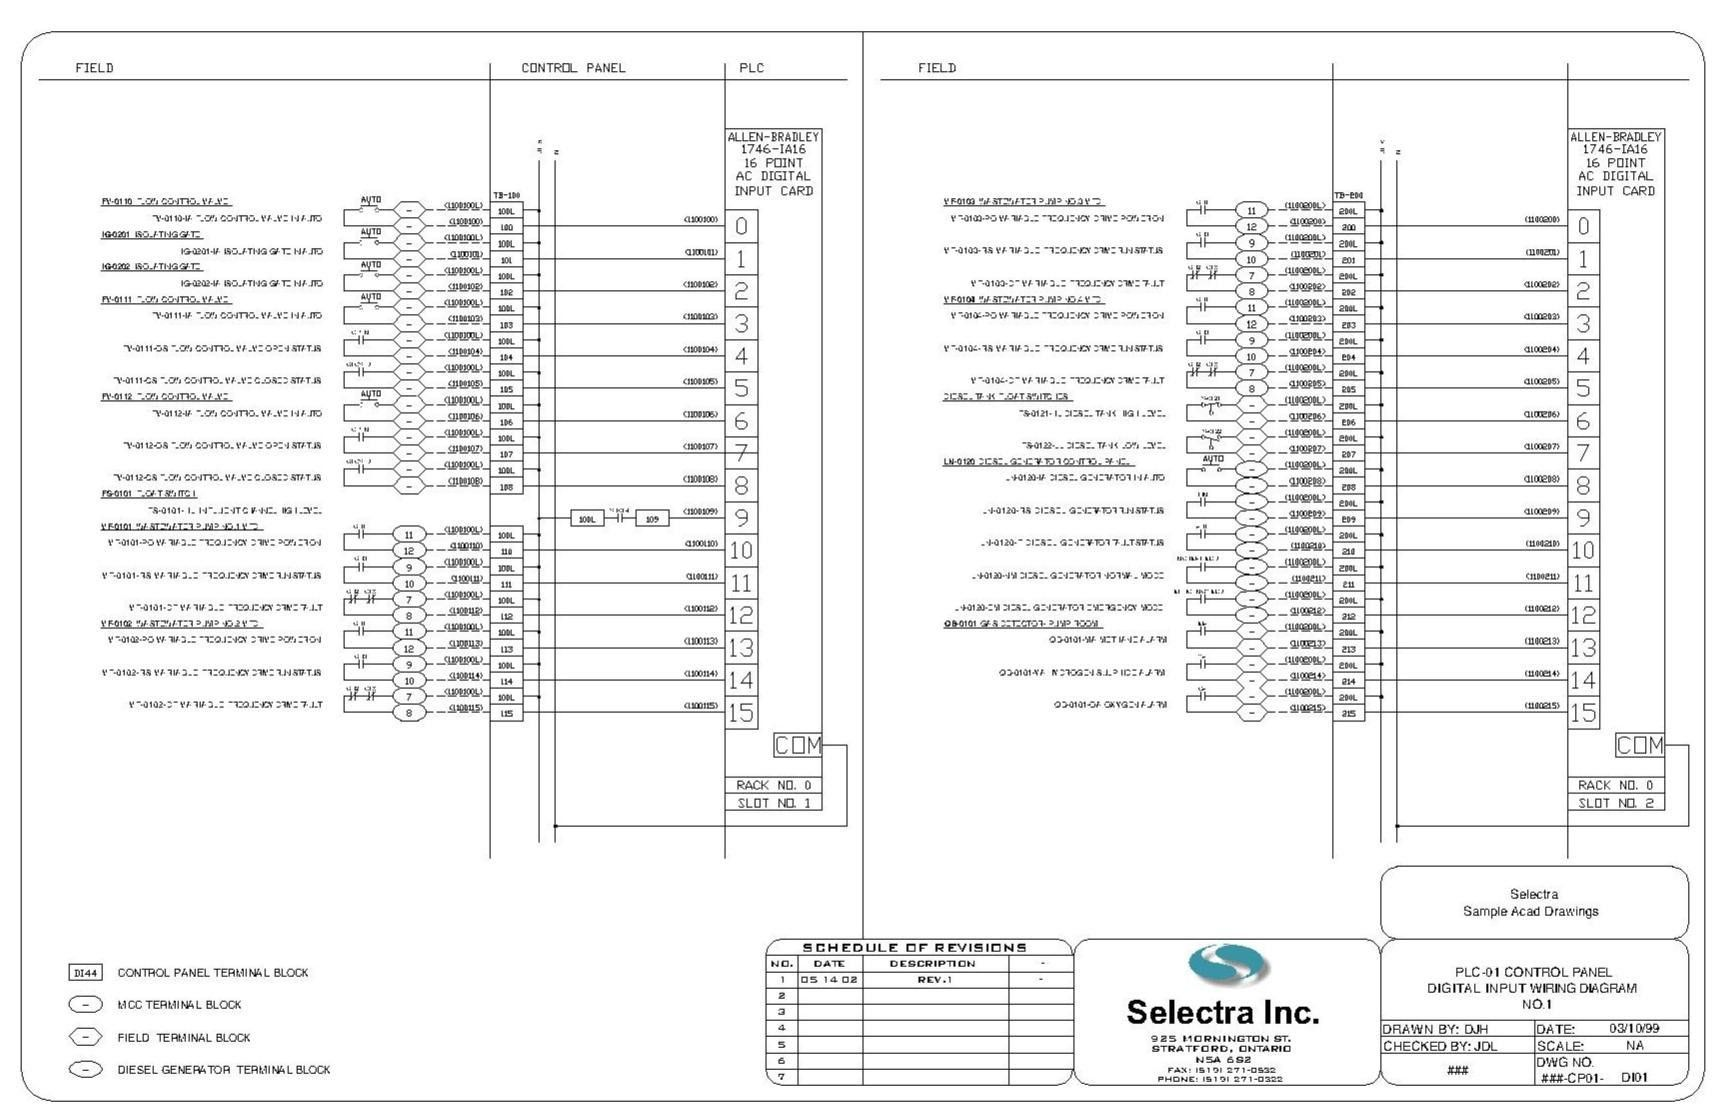 Unique Lovato Contactor Wiring Diagram #diagramsample #